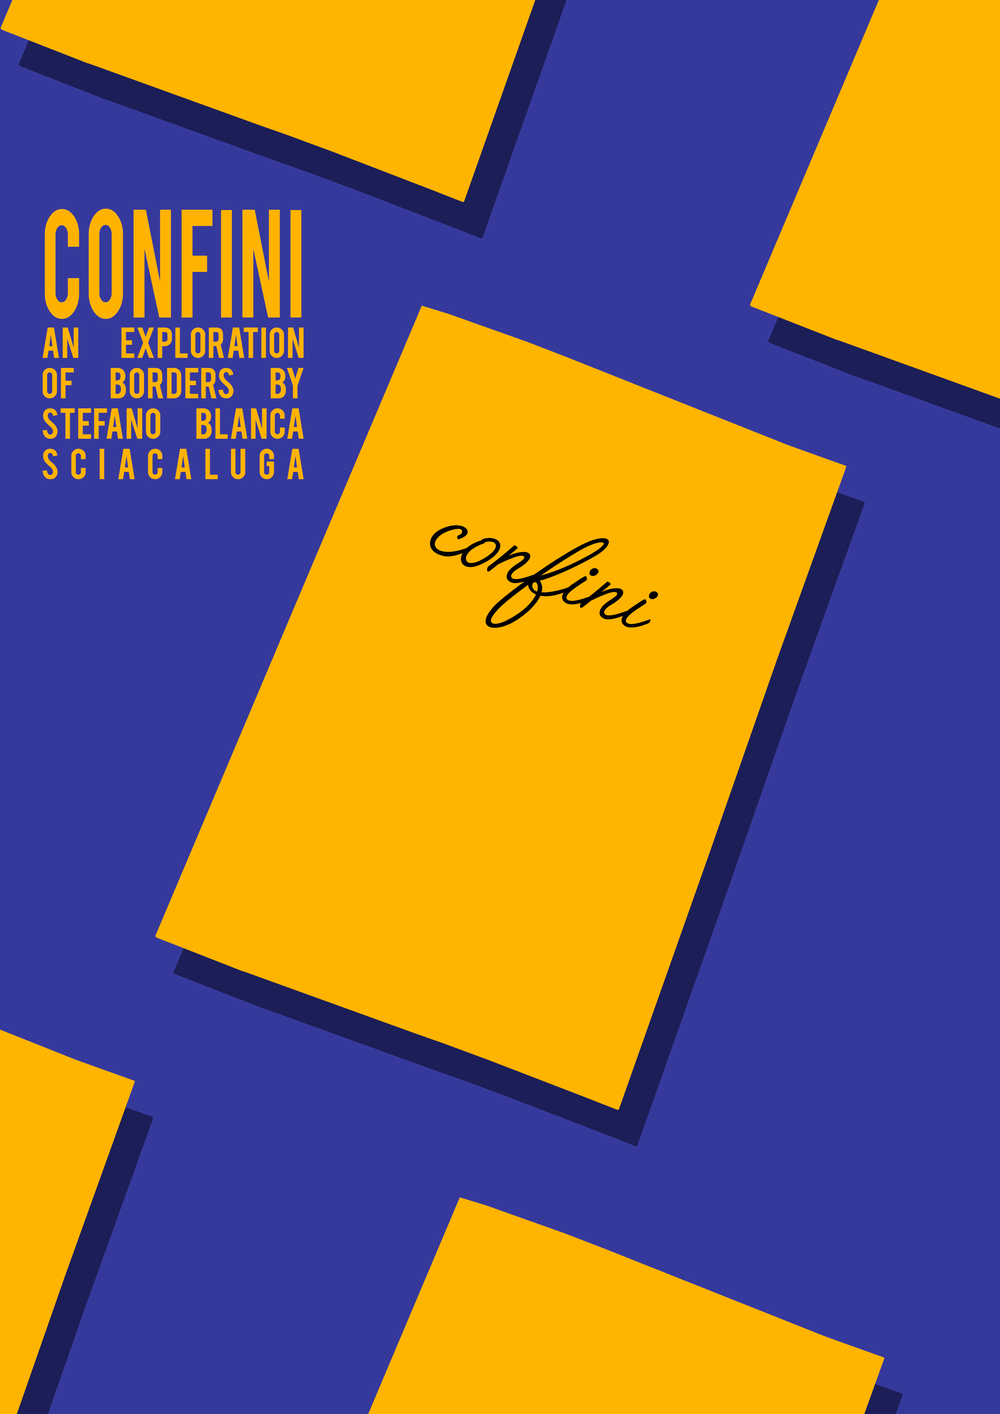 confini-poster.png